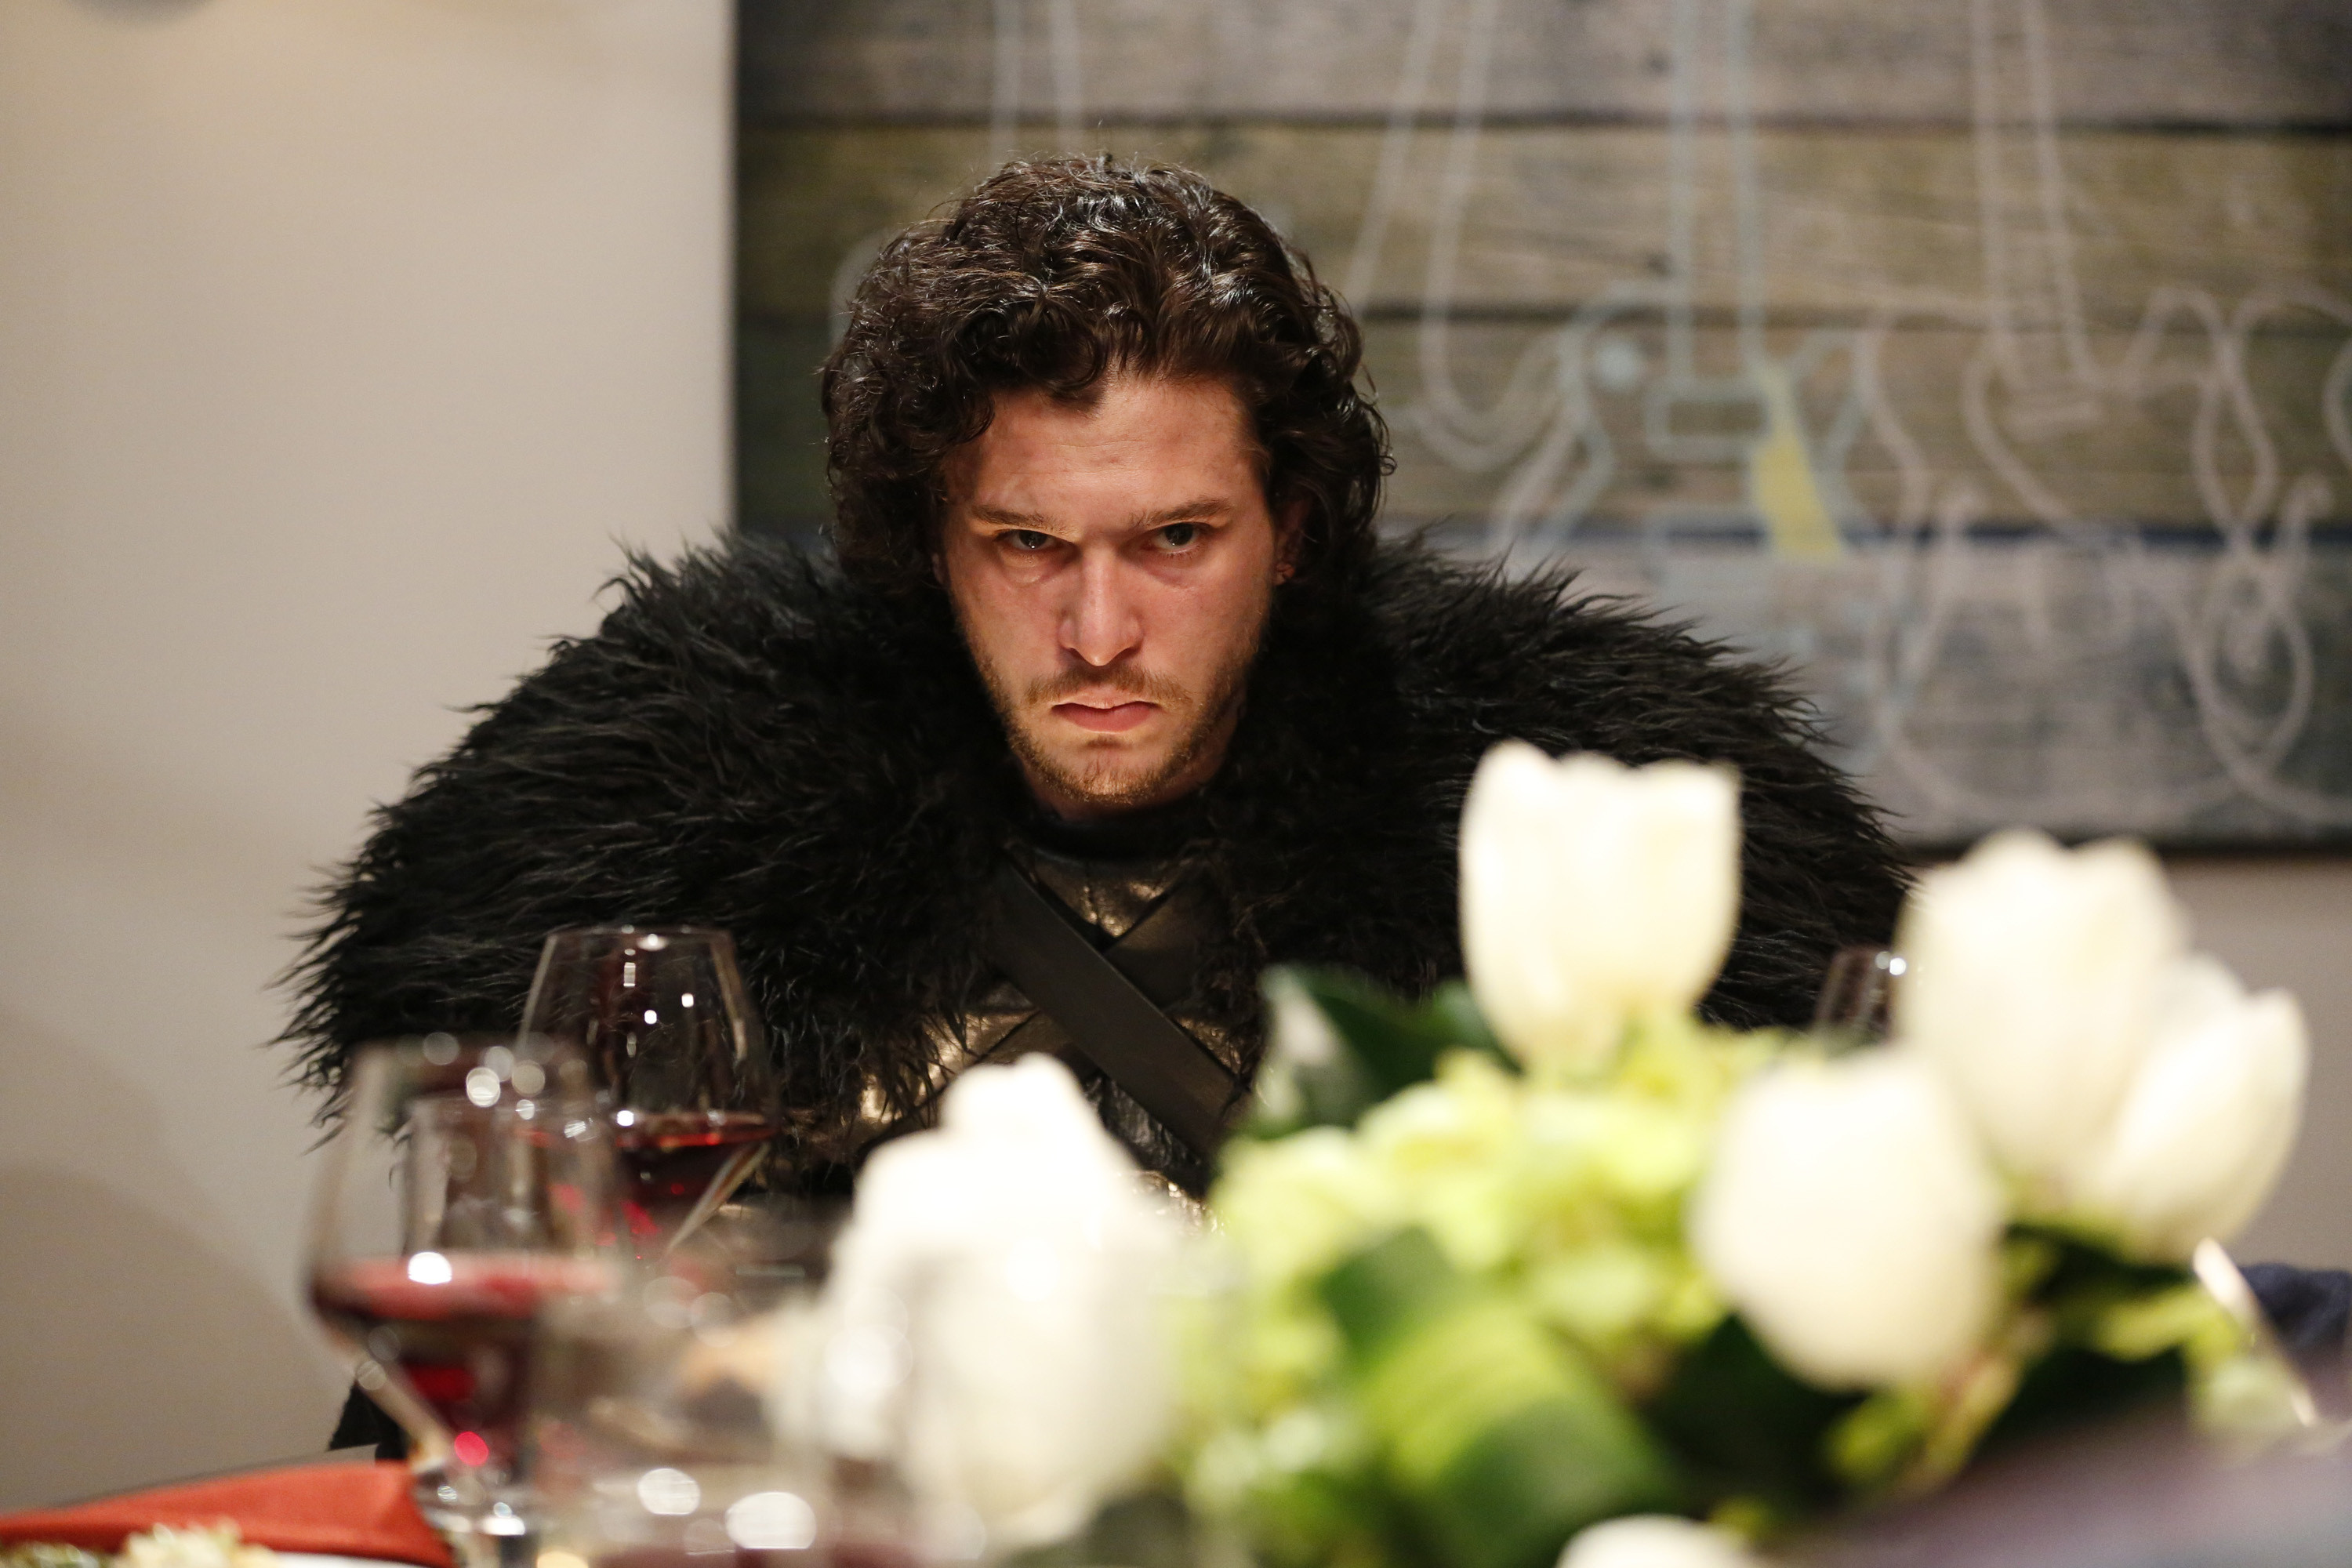 This Website Tells You Who'll Die Next In 'Game Of Thrones'